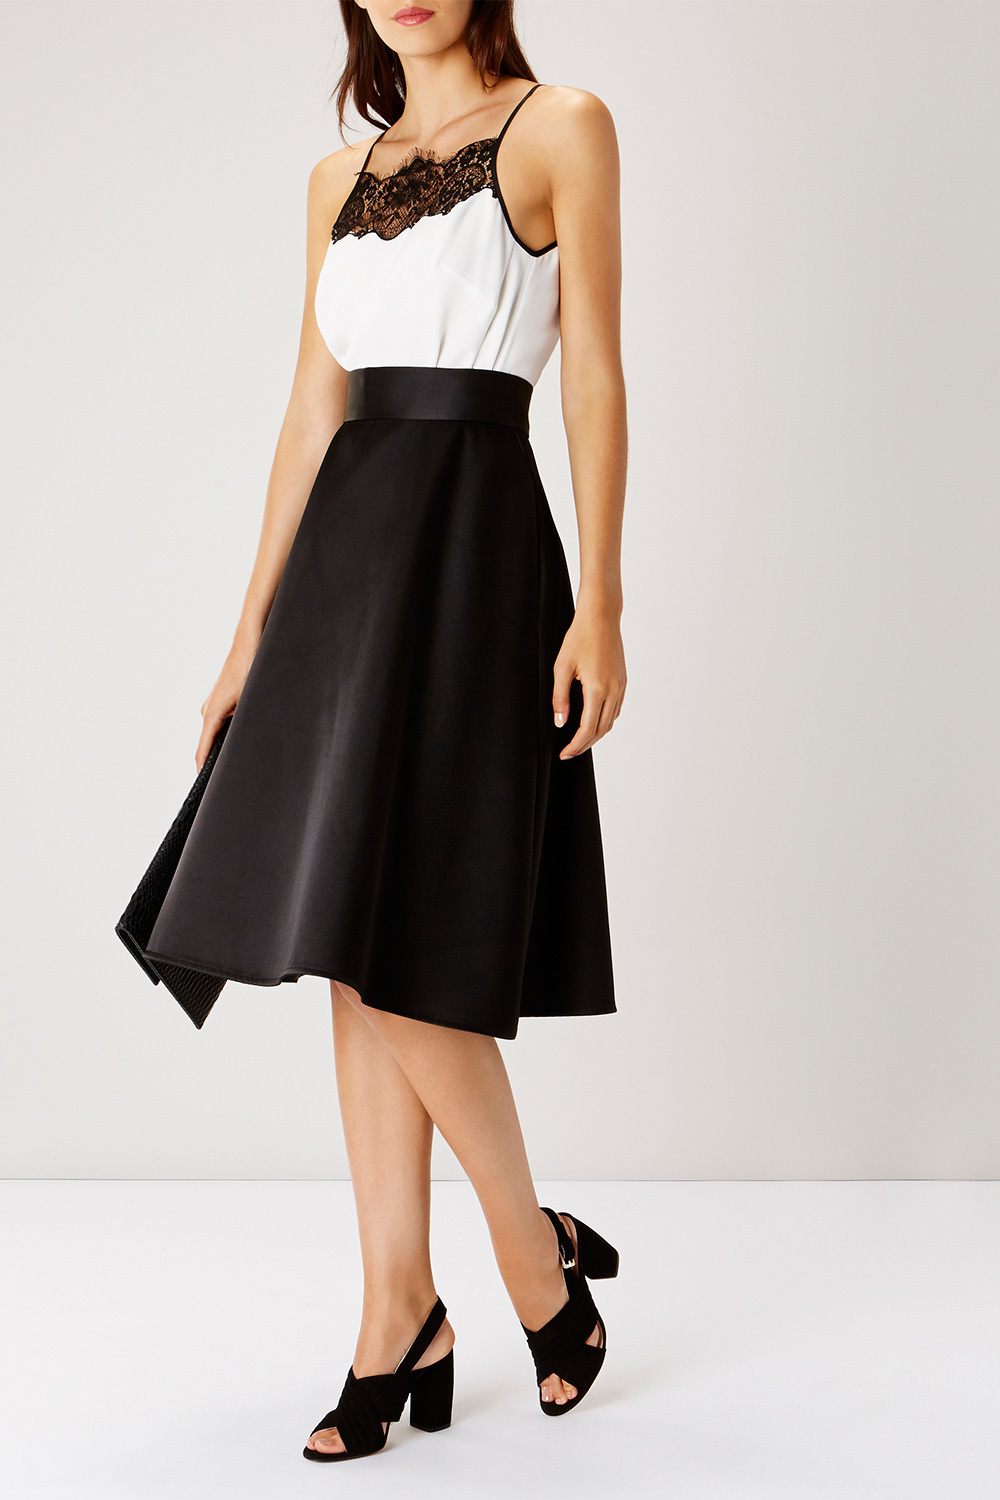 Coro Skirt - pattern: plain; style: full/prom skirt; fit: loose/voluminous; waist: high rise; predominant colour: black; length: on the knee; fibres: polyester/polyamide - stretch; occasions: occasion, creative work; hip detail: soft pleats at hip/draping at hip/flared at hip; pattern type: fabric; texture group: other - light to midweight; season: s/s 2016